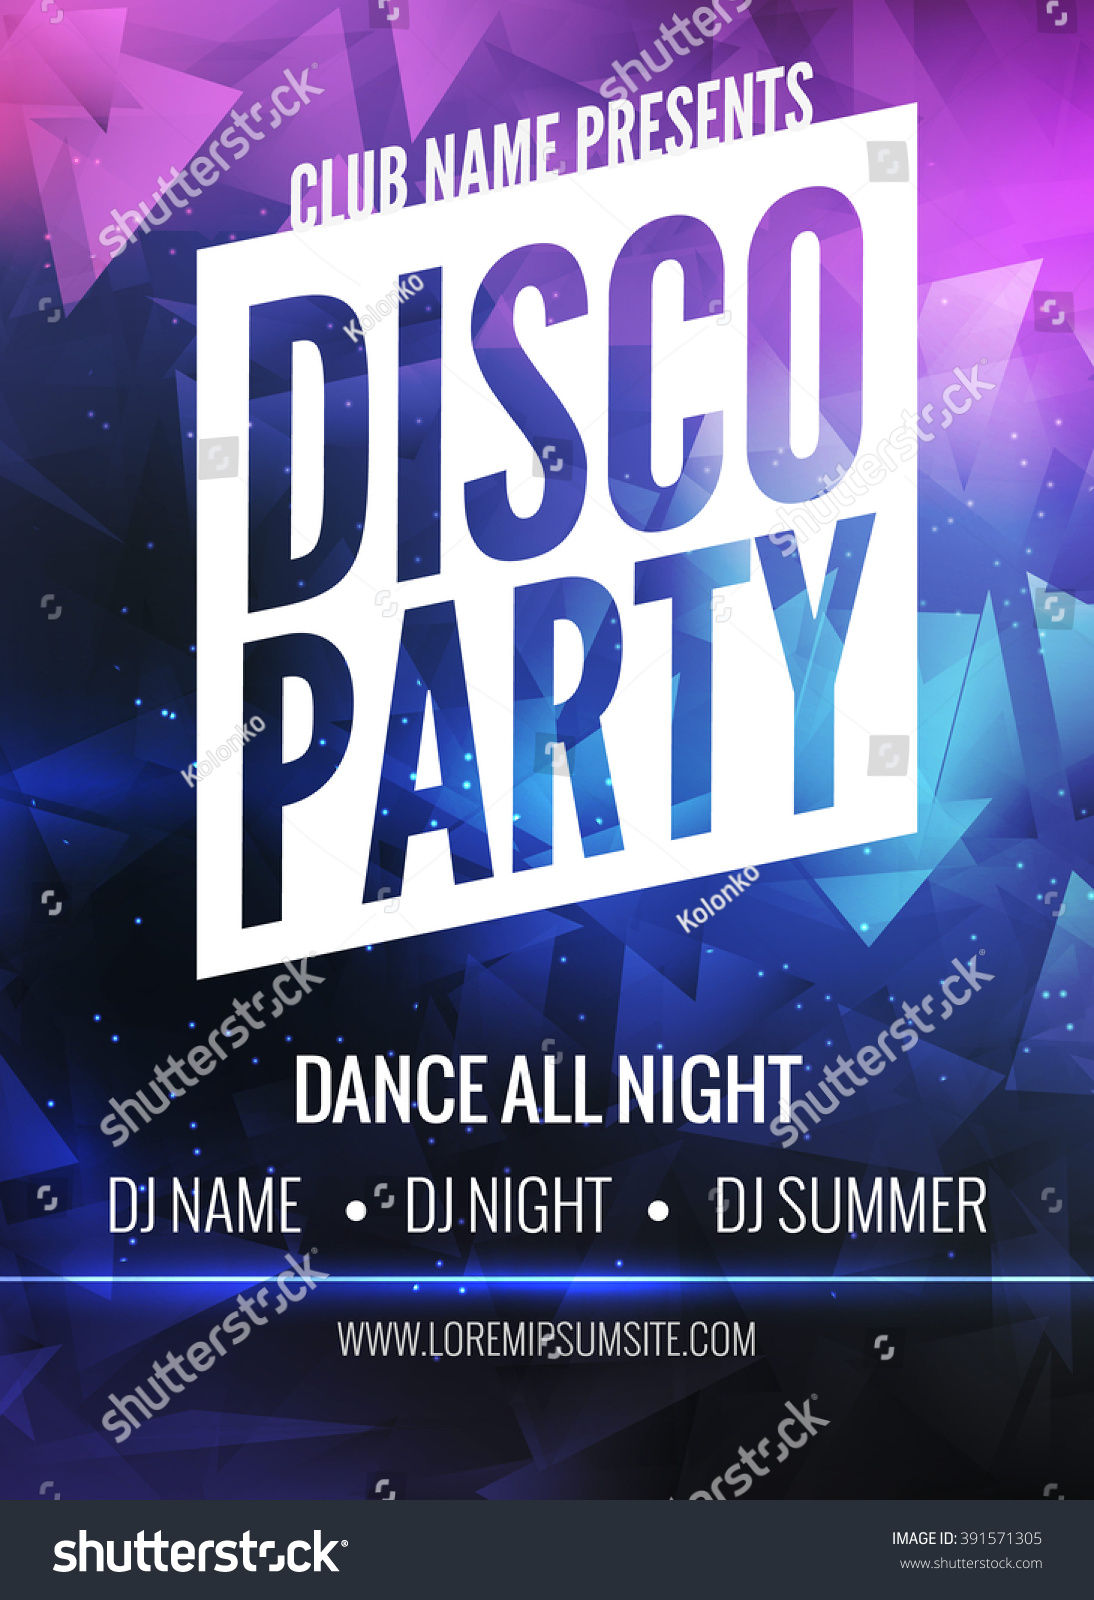 disco party poster template night dance stock vector 391571305 disco party poster template night dance party flyer disco party design template on dark